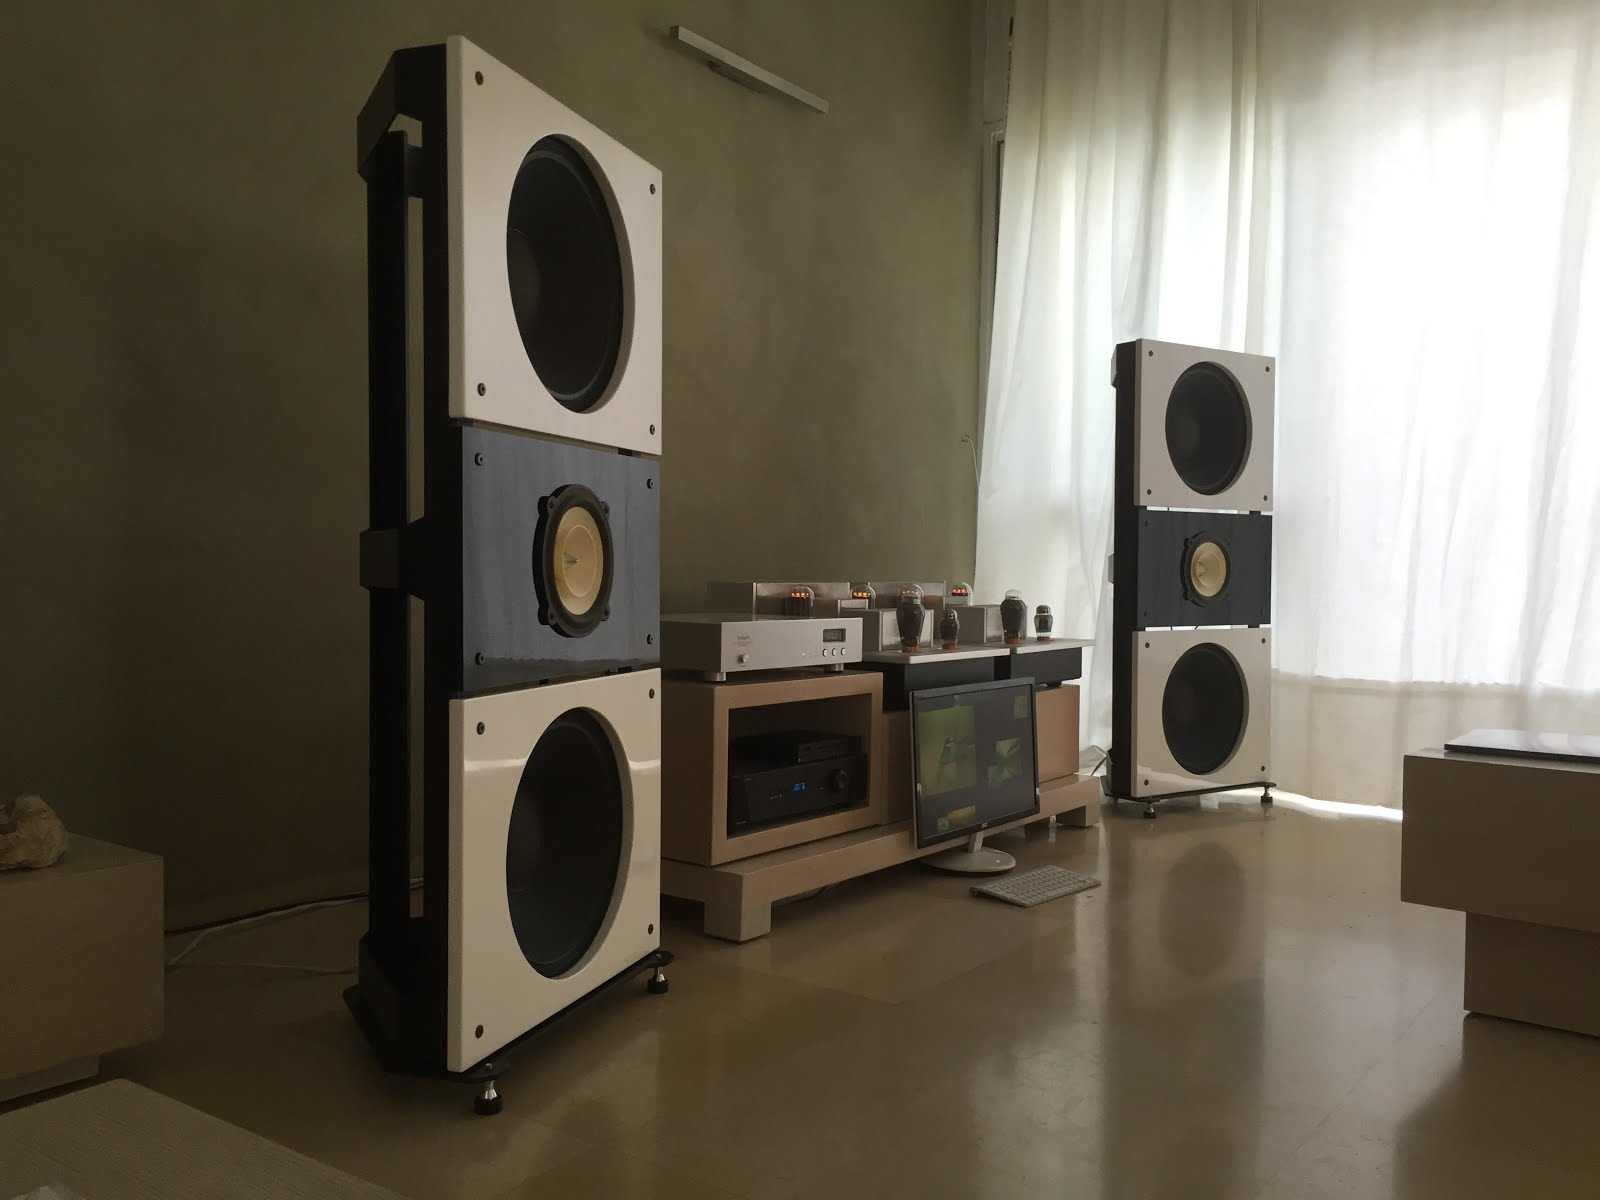 project audio Pro-ject has been producing quality hi-fi audio components for over 20 yrs 3ma is an authorized dealer of pro-ject audio systems in houston, tx.